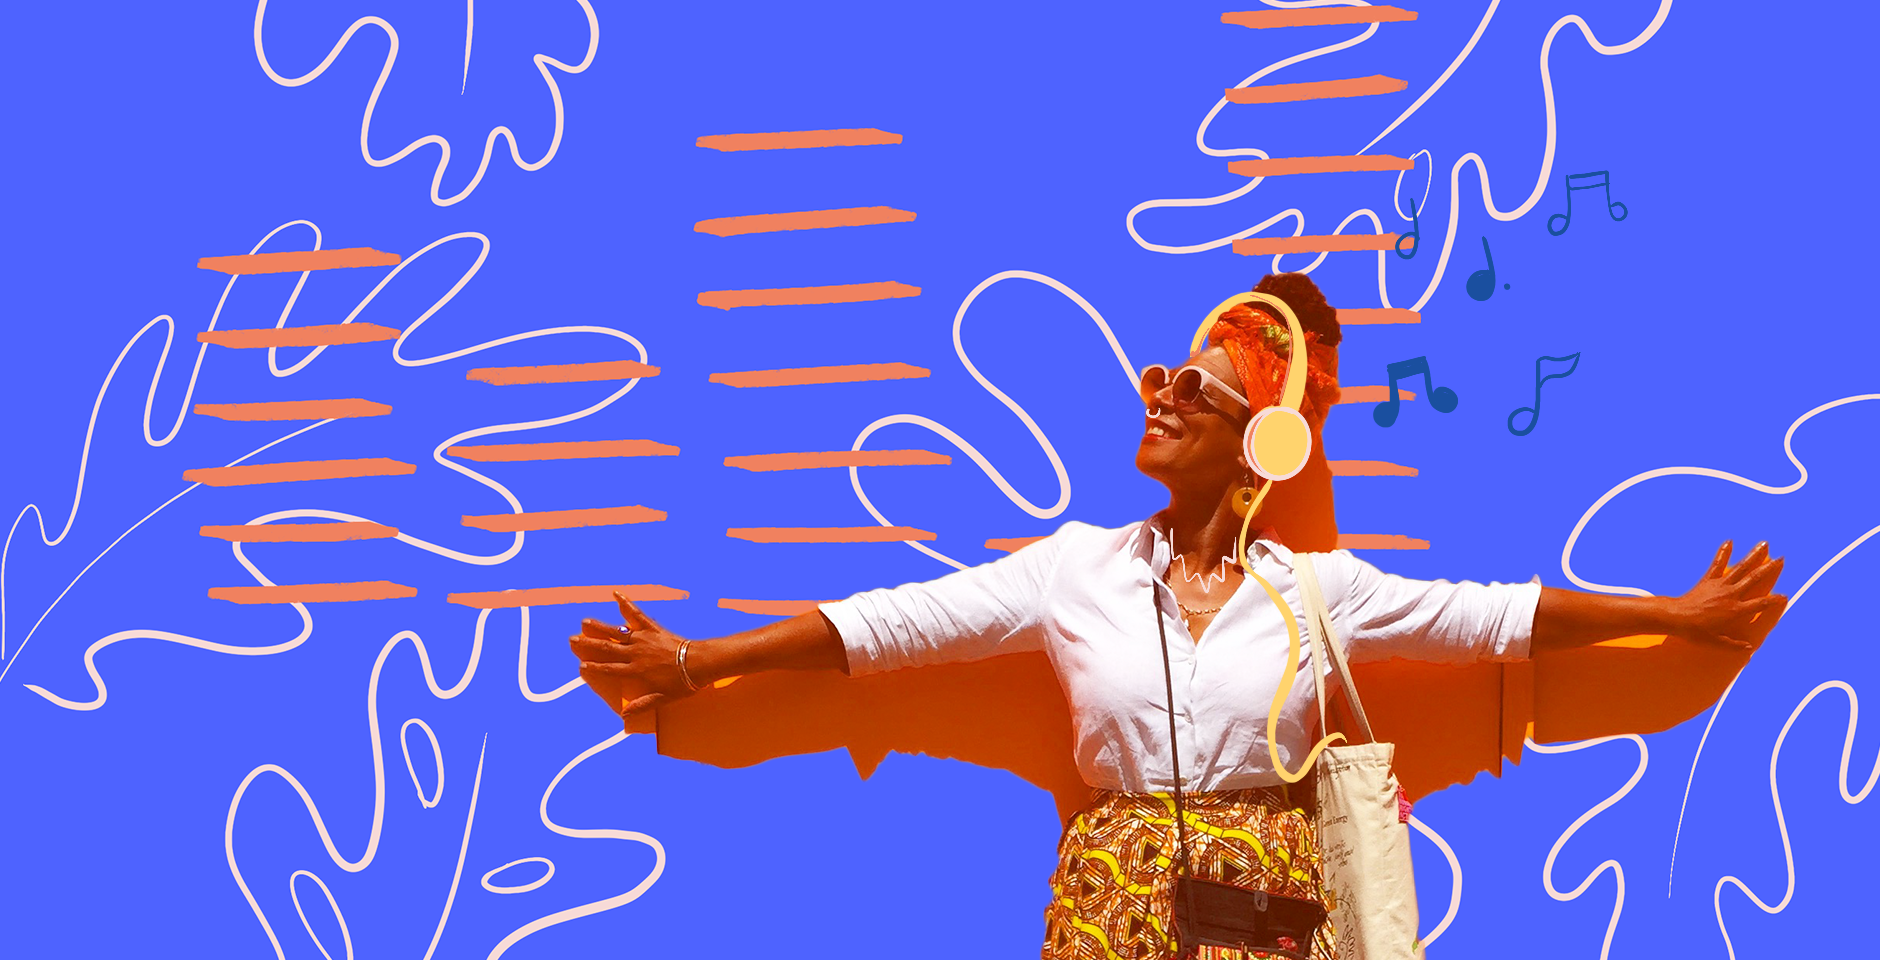 Smiling Afro-Latina with headphones over a colorful, bright blue tropical background pattern